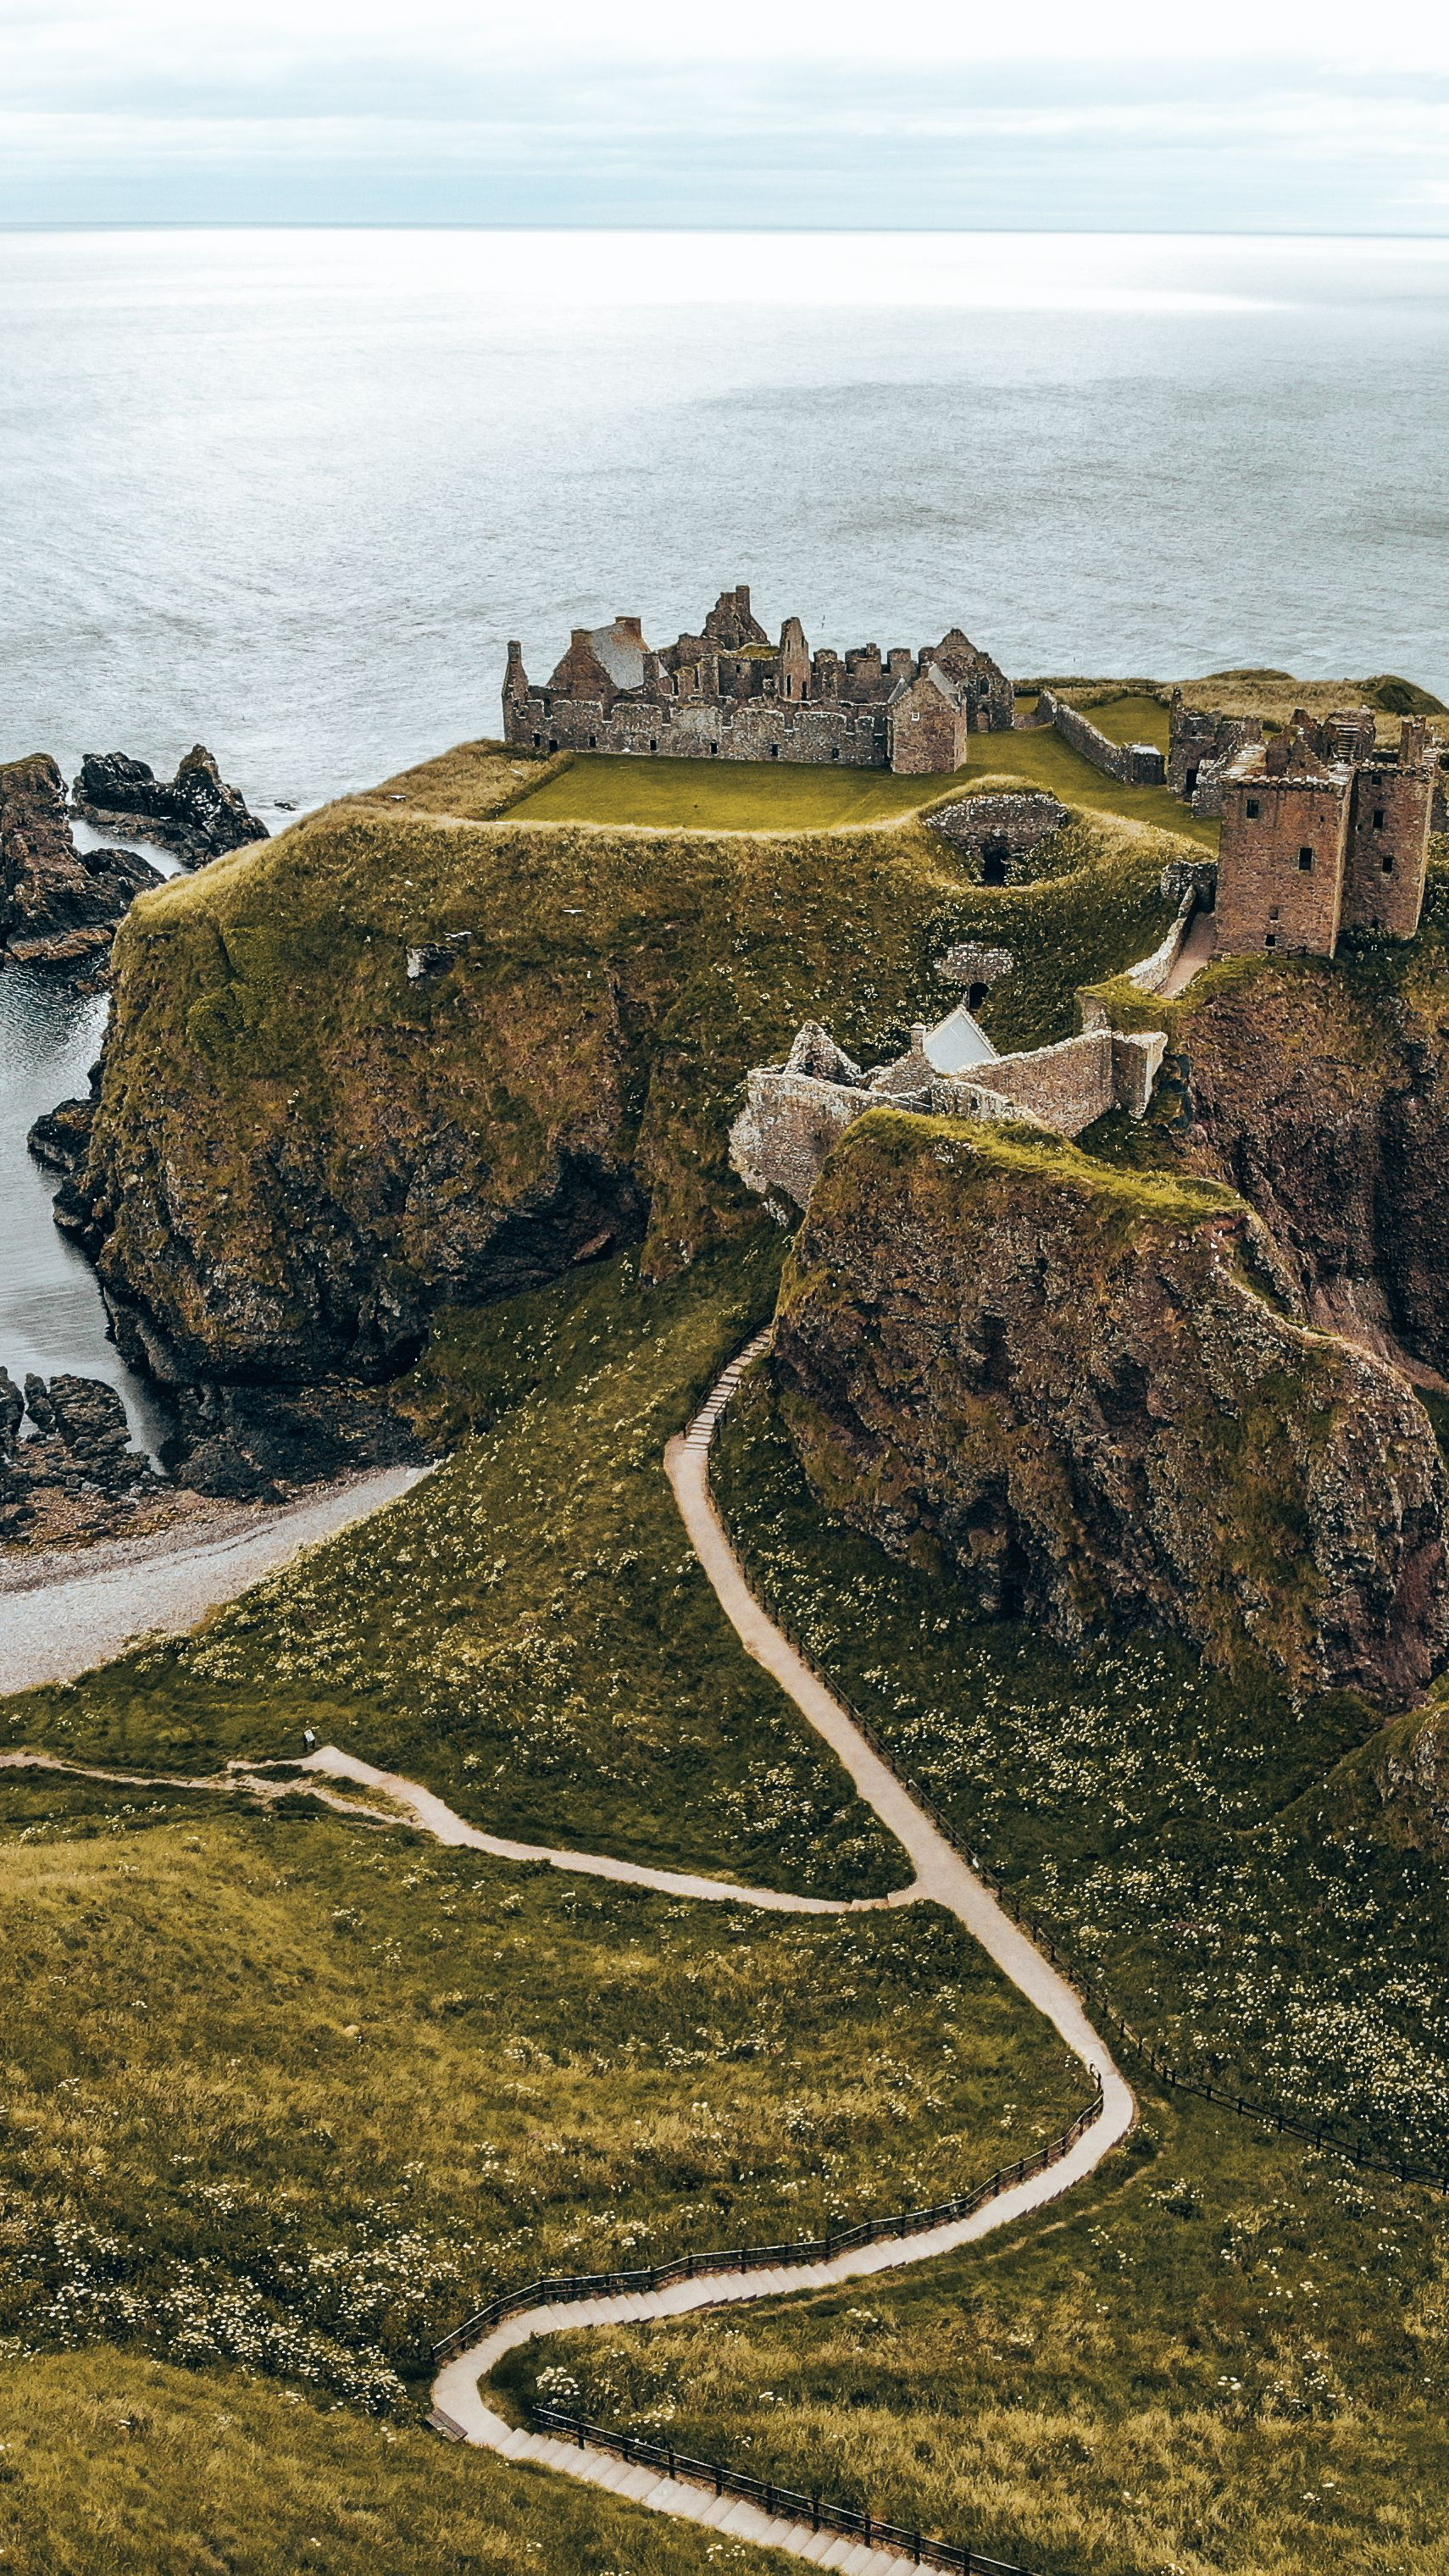 Check out the most amazing castles to visit in Scotland including Dunnottar Castle in Aberdeenshire.  #dunnottarcastle #castlesofscotland #scotlandcastles #scottishcastles #scotlandcastlestovisit